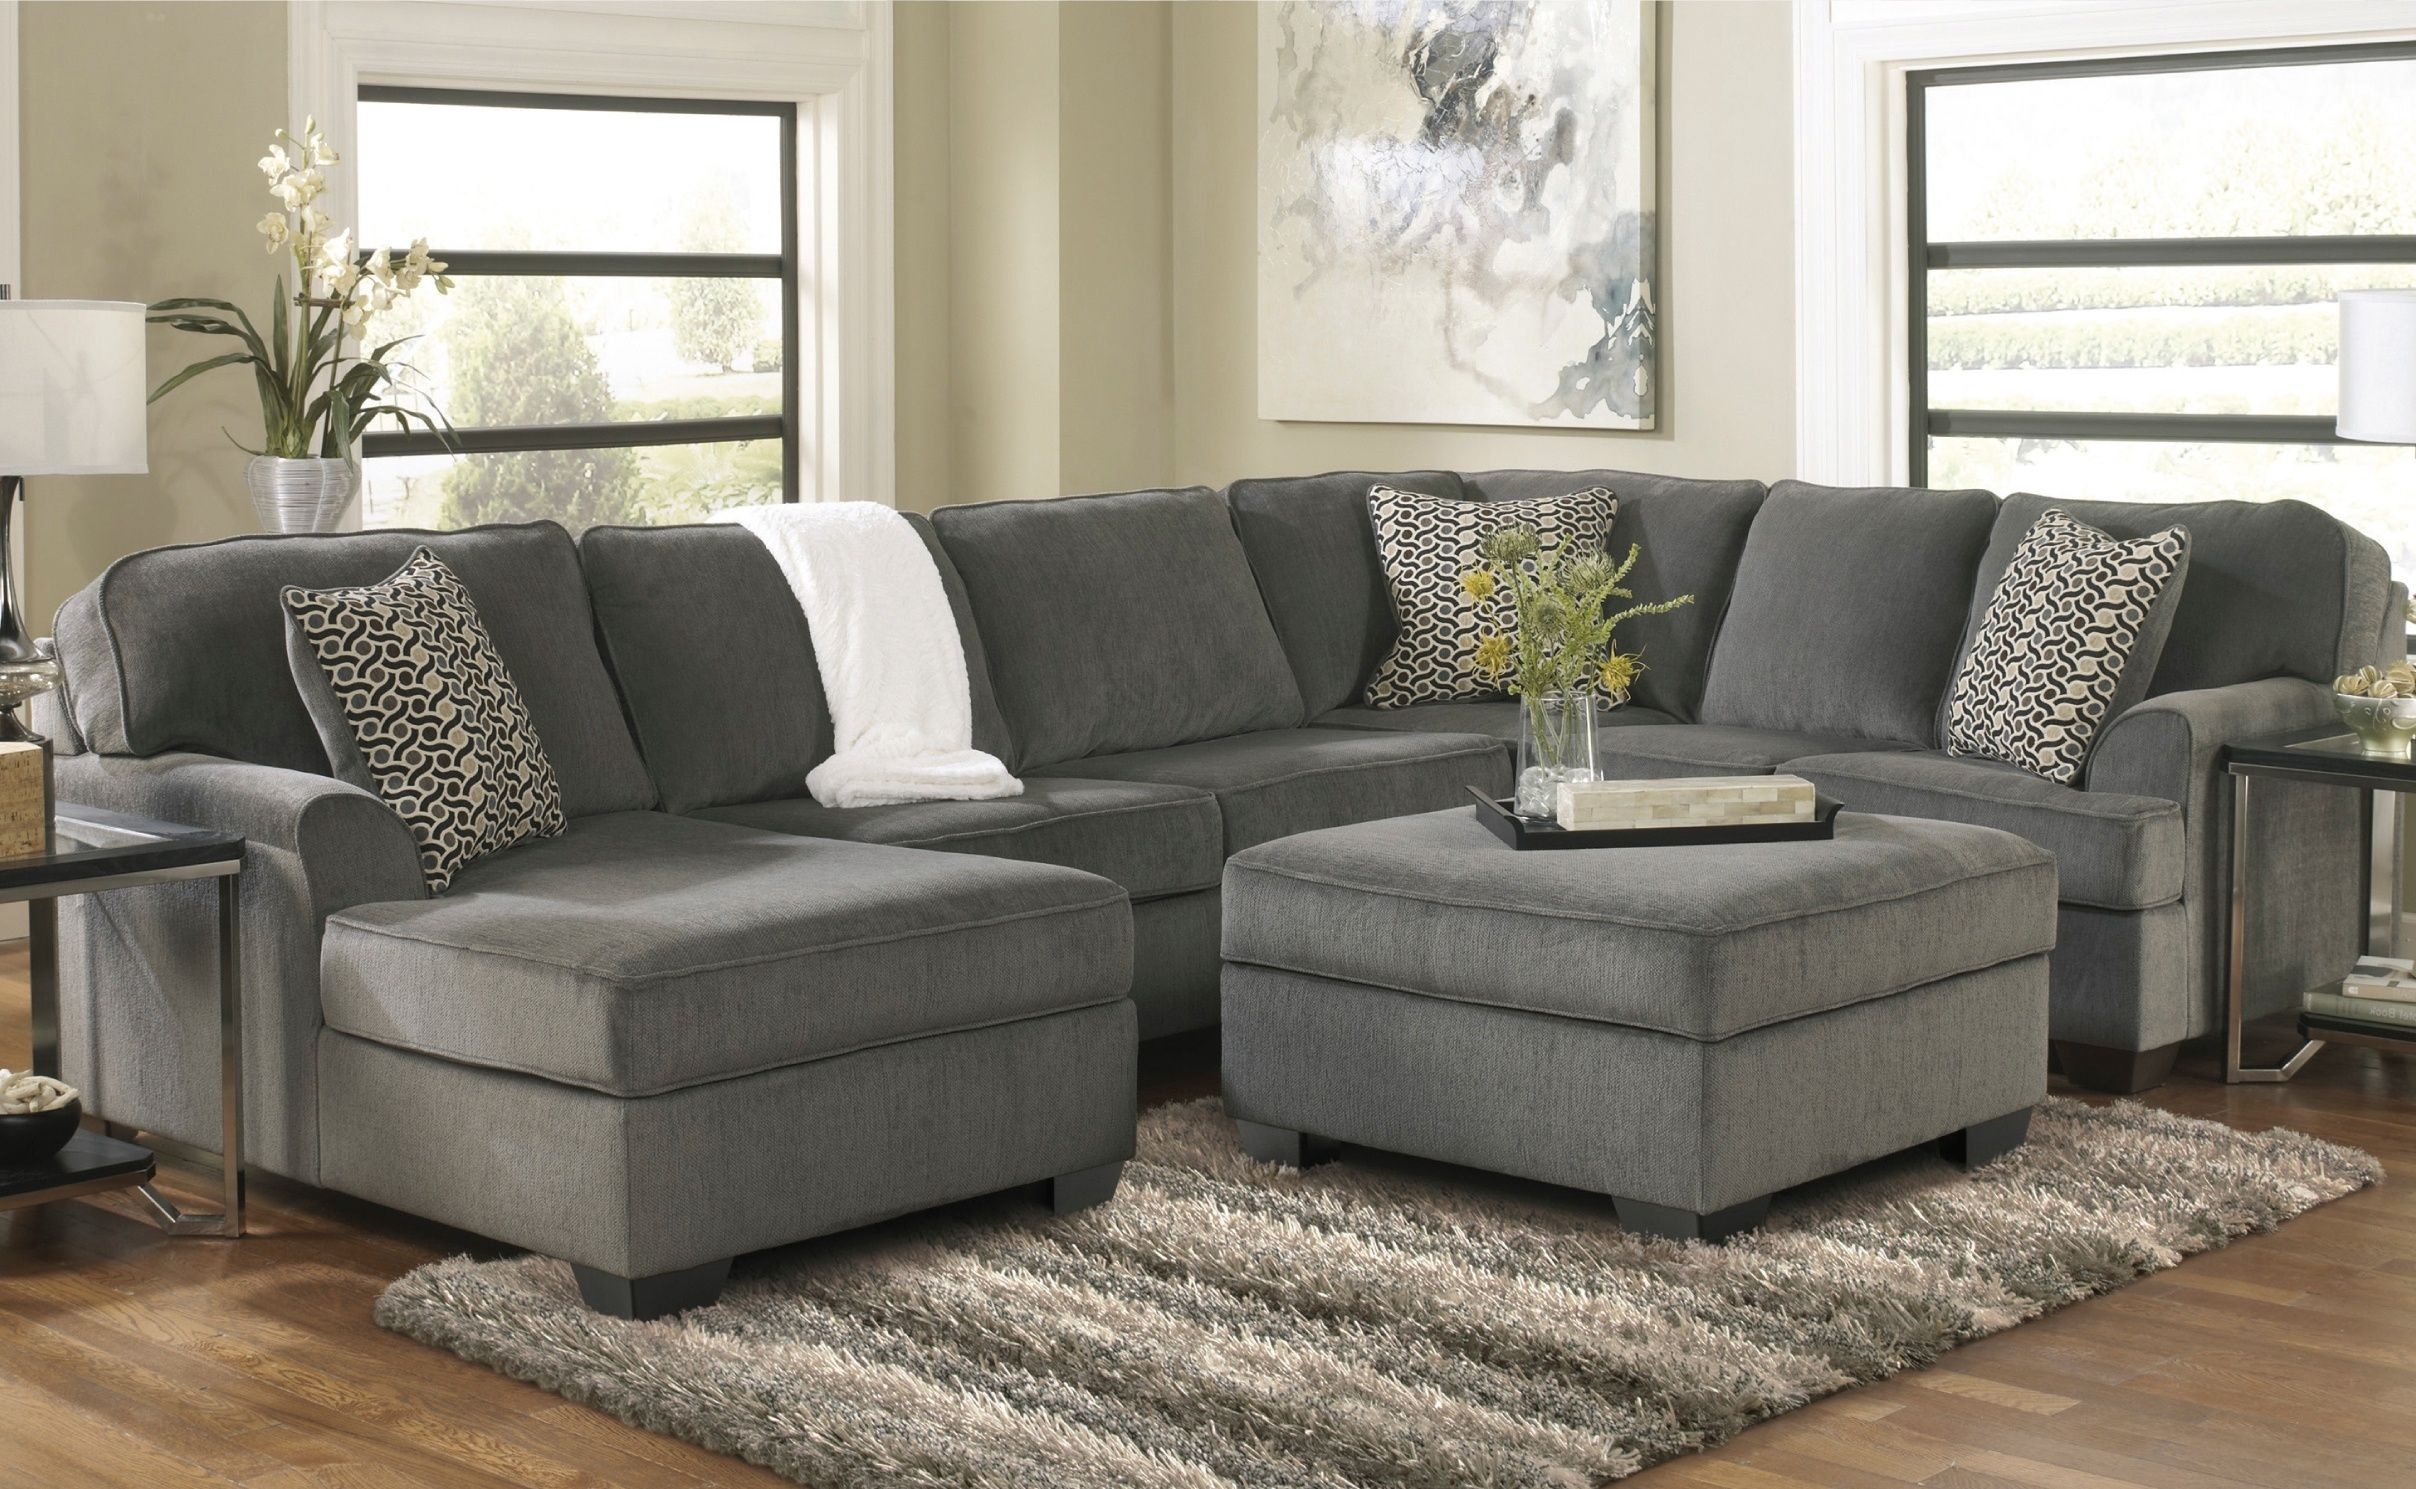 American Furniture Warehouse Couches Living Room Design Diy Living Room Designs Grey Living Room Sets